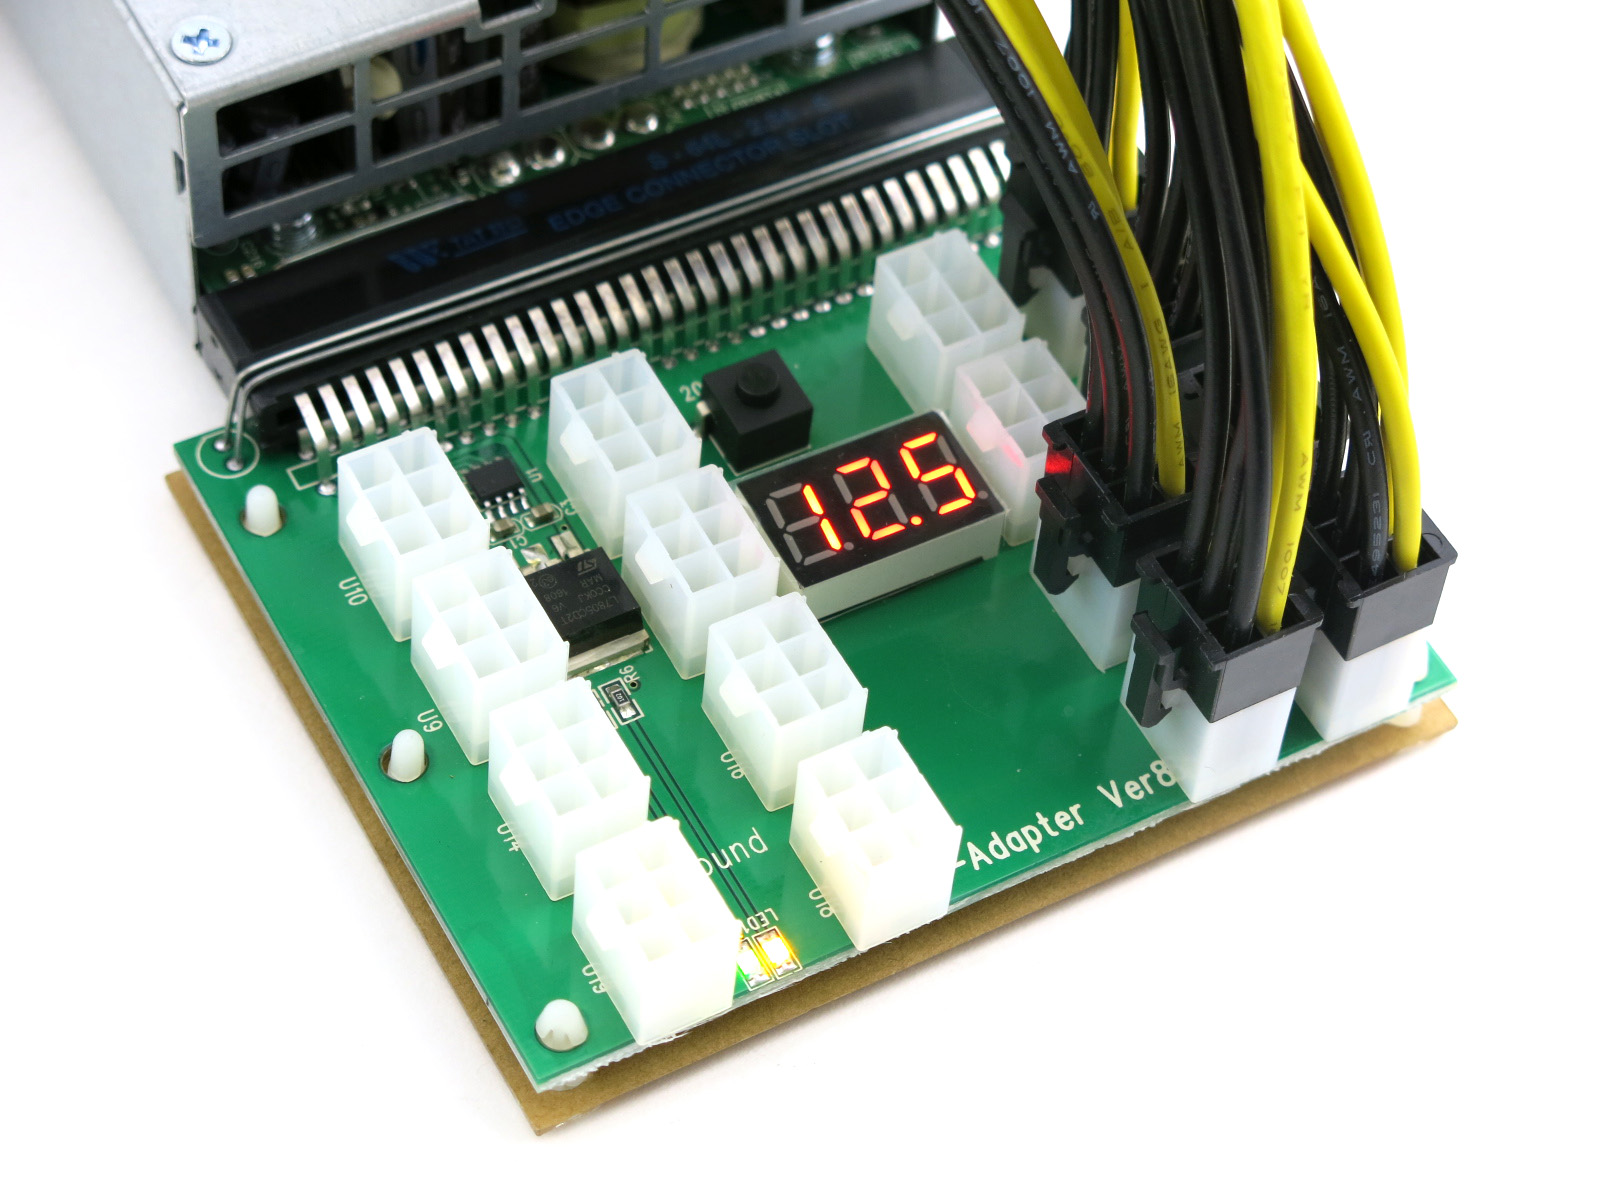 X8 16 Port 6 Pin PCIE HP Delta Dell Open Air GPU Mining Benchtop Power  Supply Breakout Board w/ 6 PCIE Cables